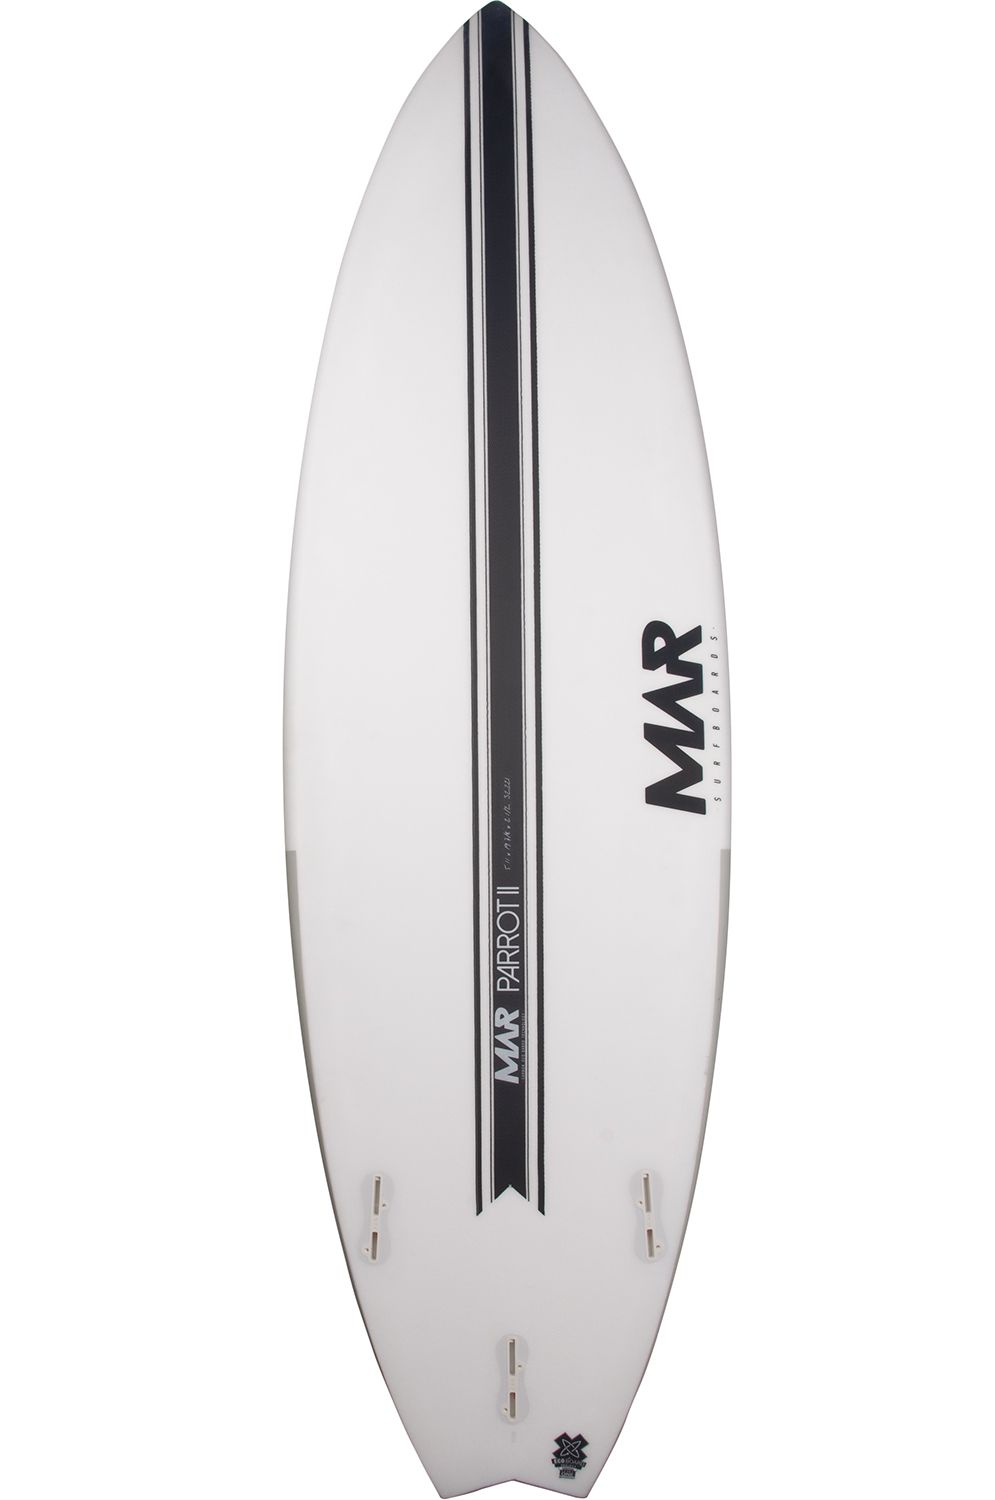 Prancha Surf Mar 6'0 PARROT II LCT Swallow Tail - White FCS II 6ft0